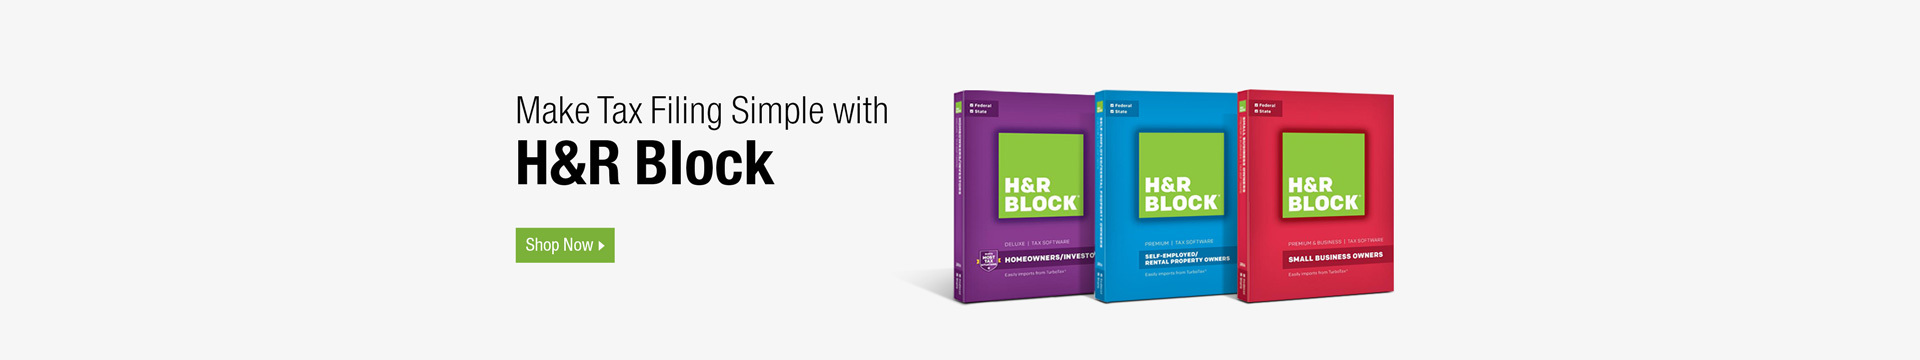 Make Tax Filing Simple with H&R Block